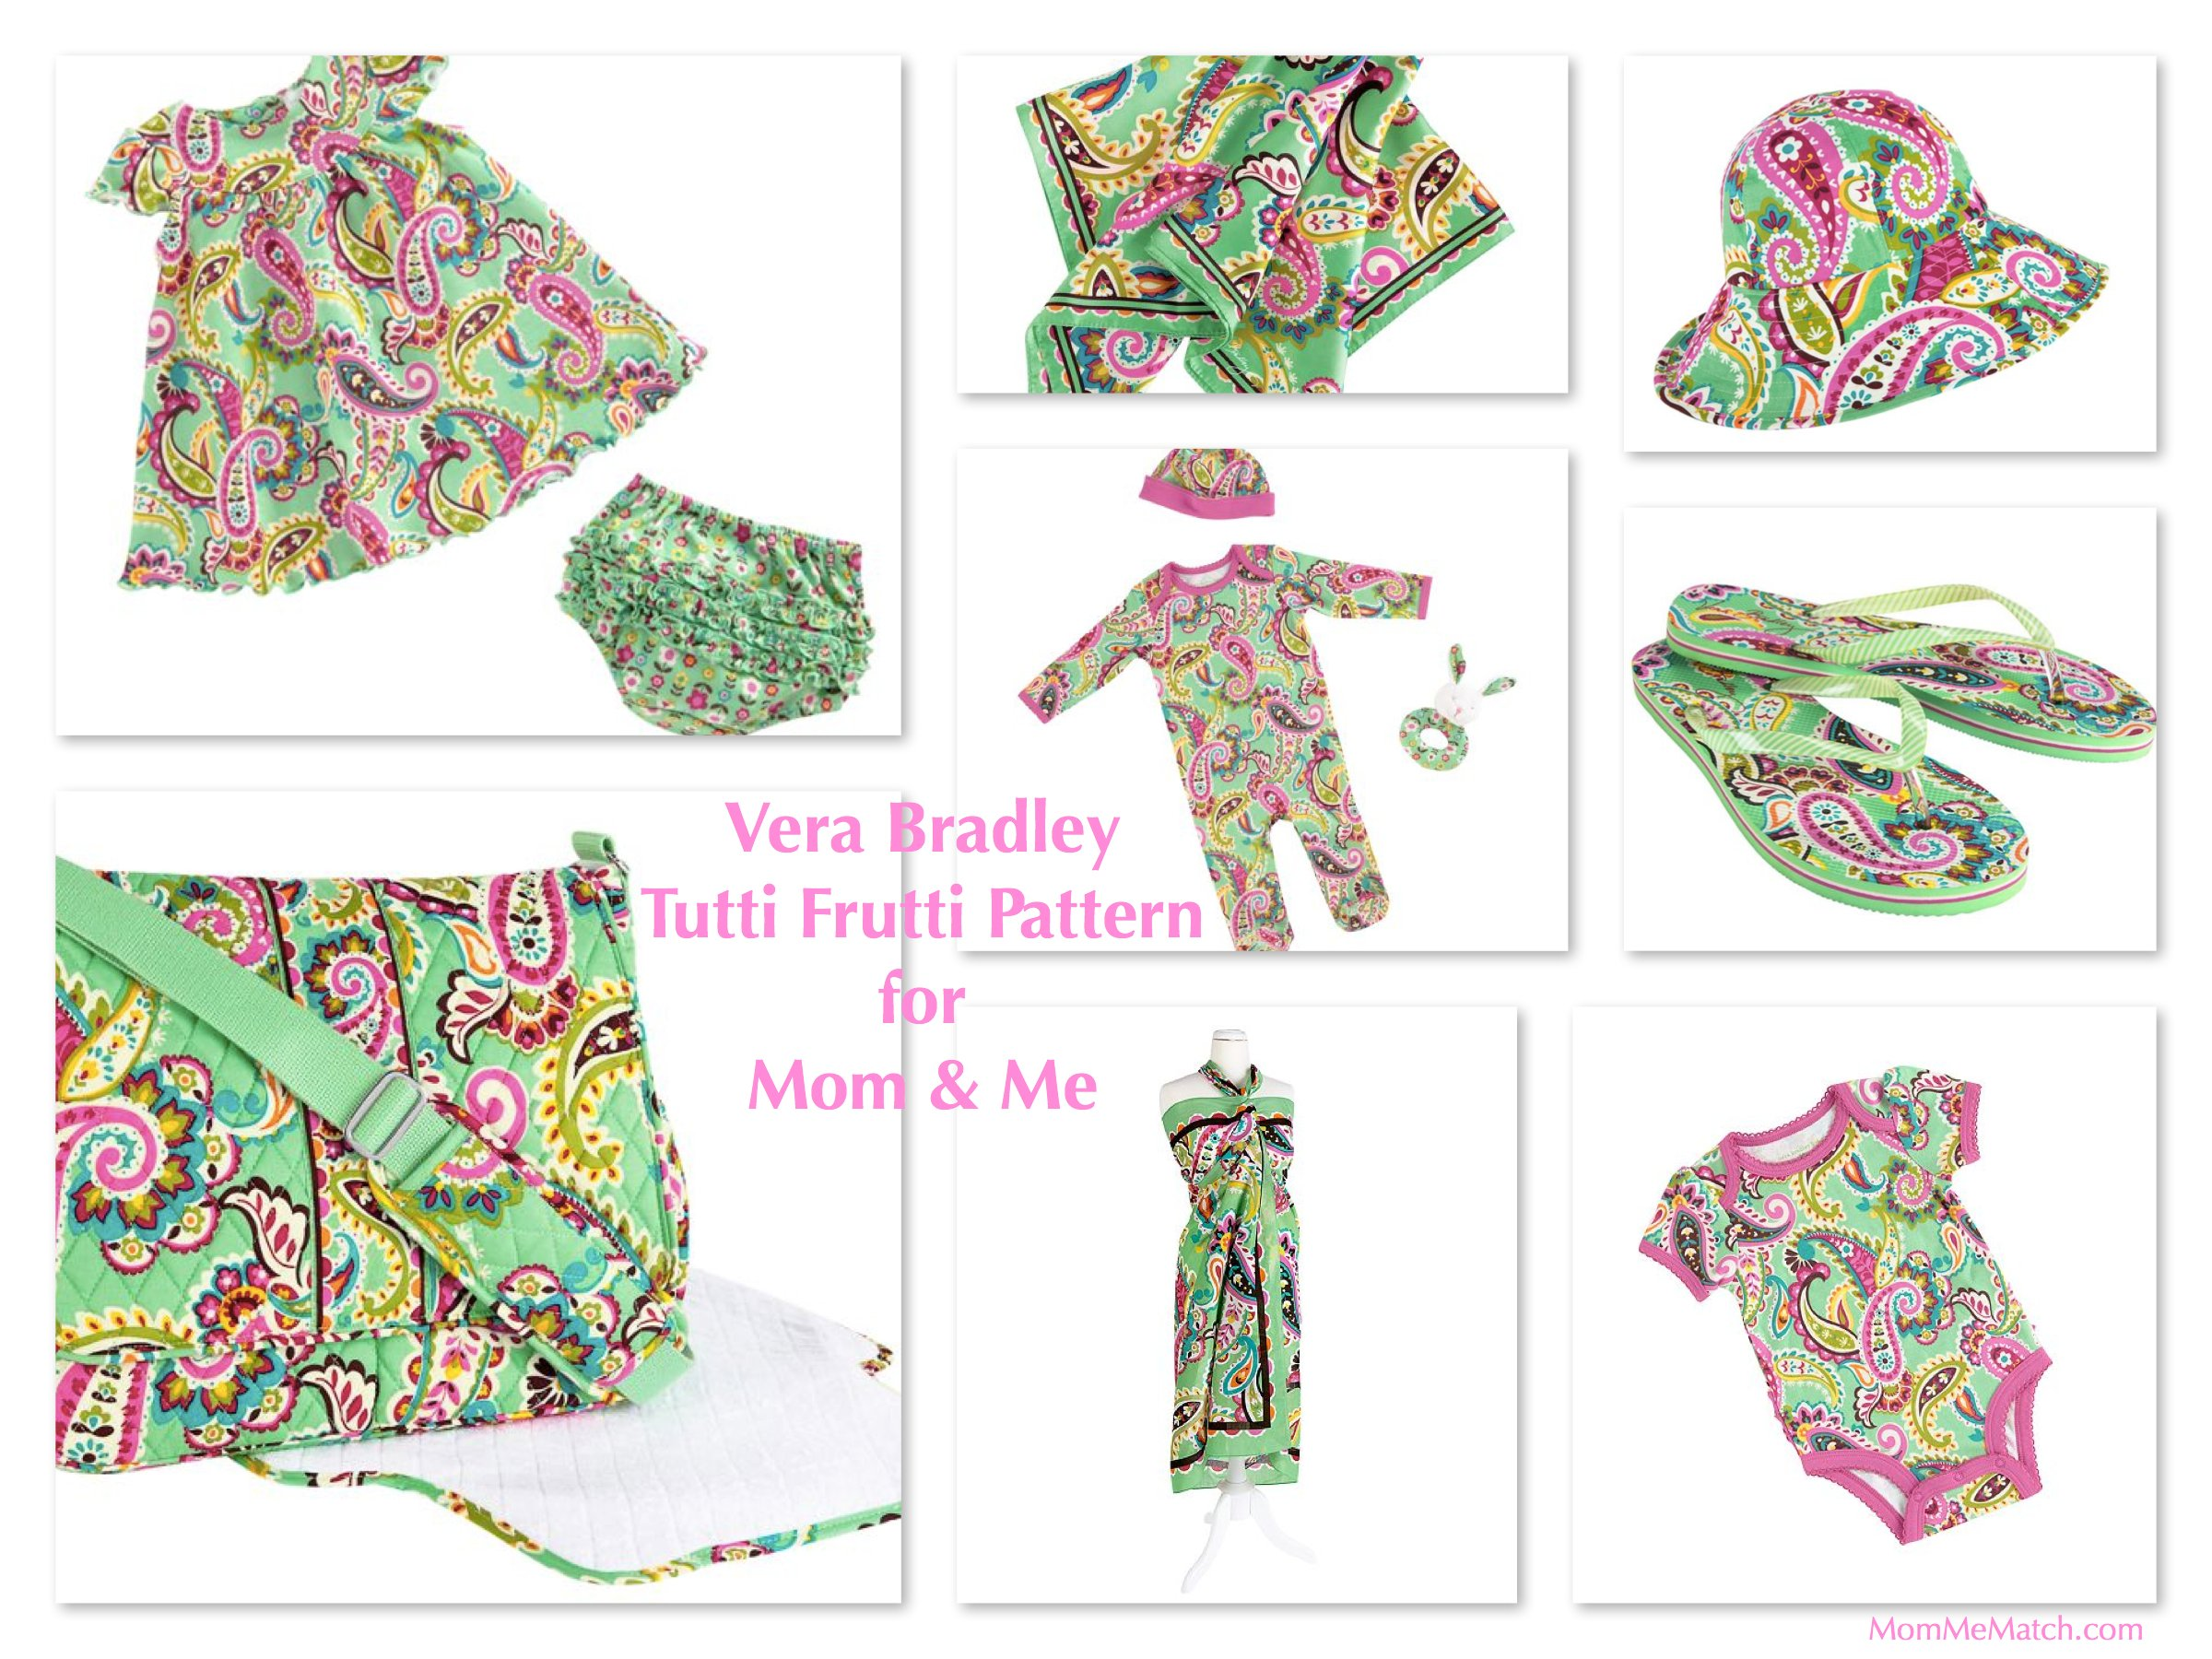 Mom & Me Matching Vera Bradley Tutti Frutti Pattern Baby Bags & Outfits